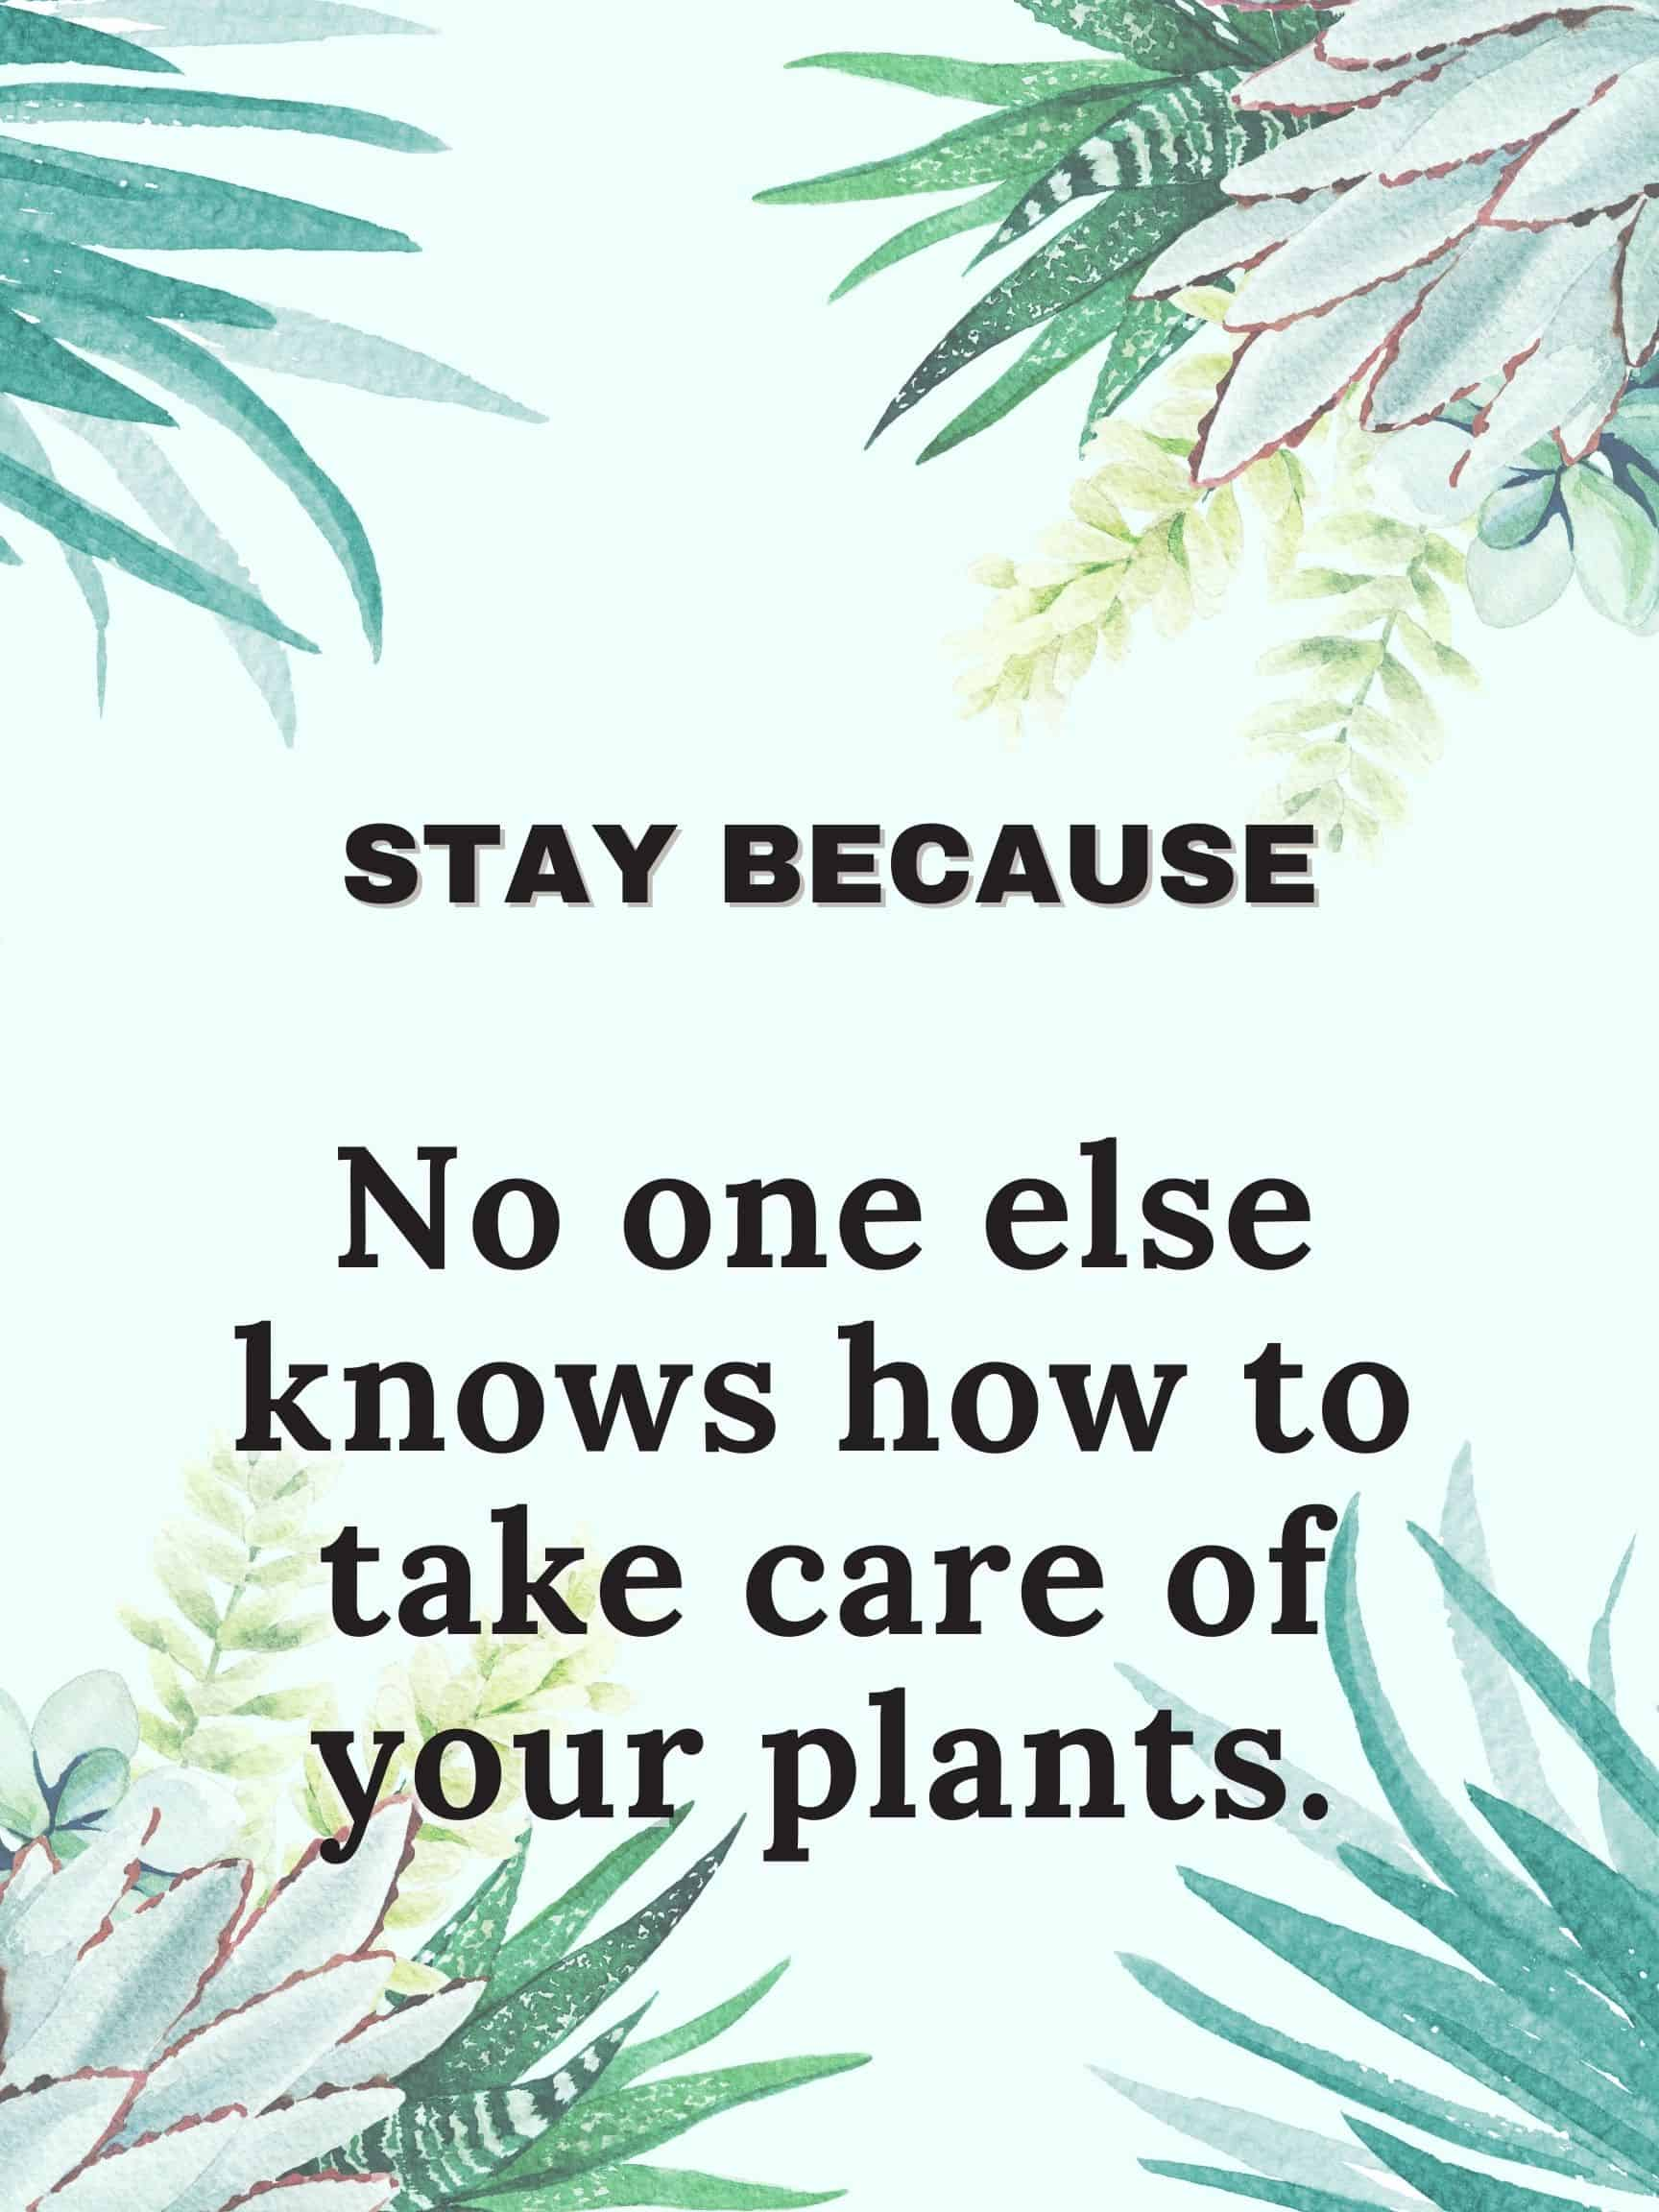 Stay because no one else knows how to take care of your plants. #staybecause